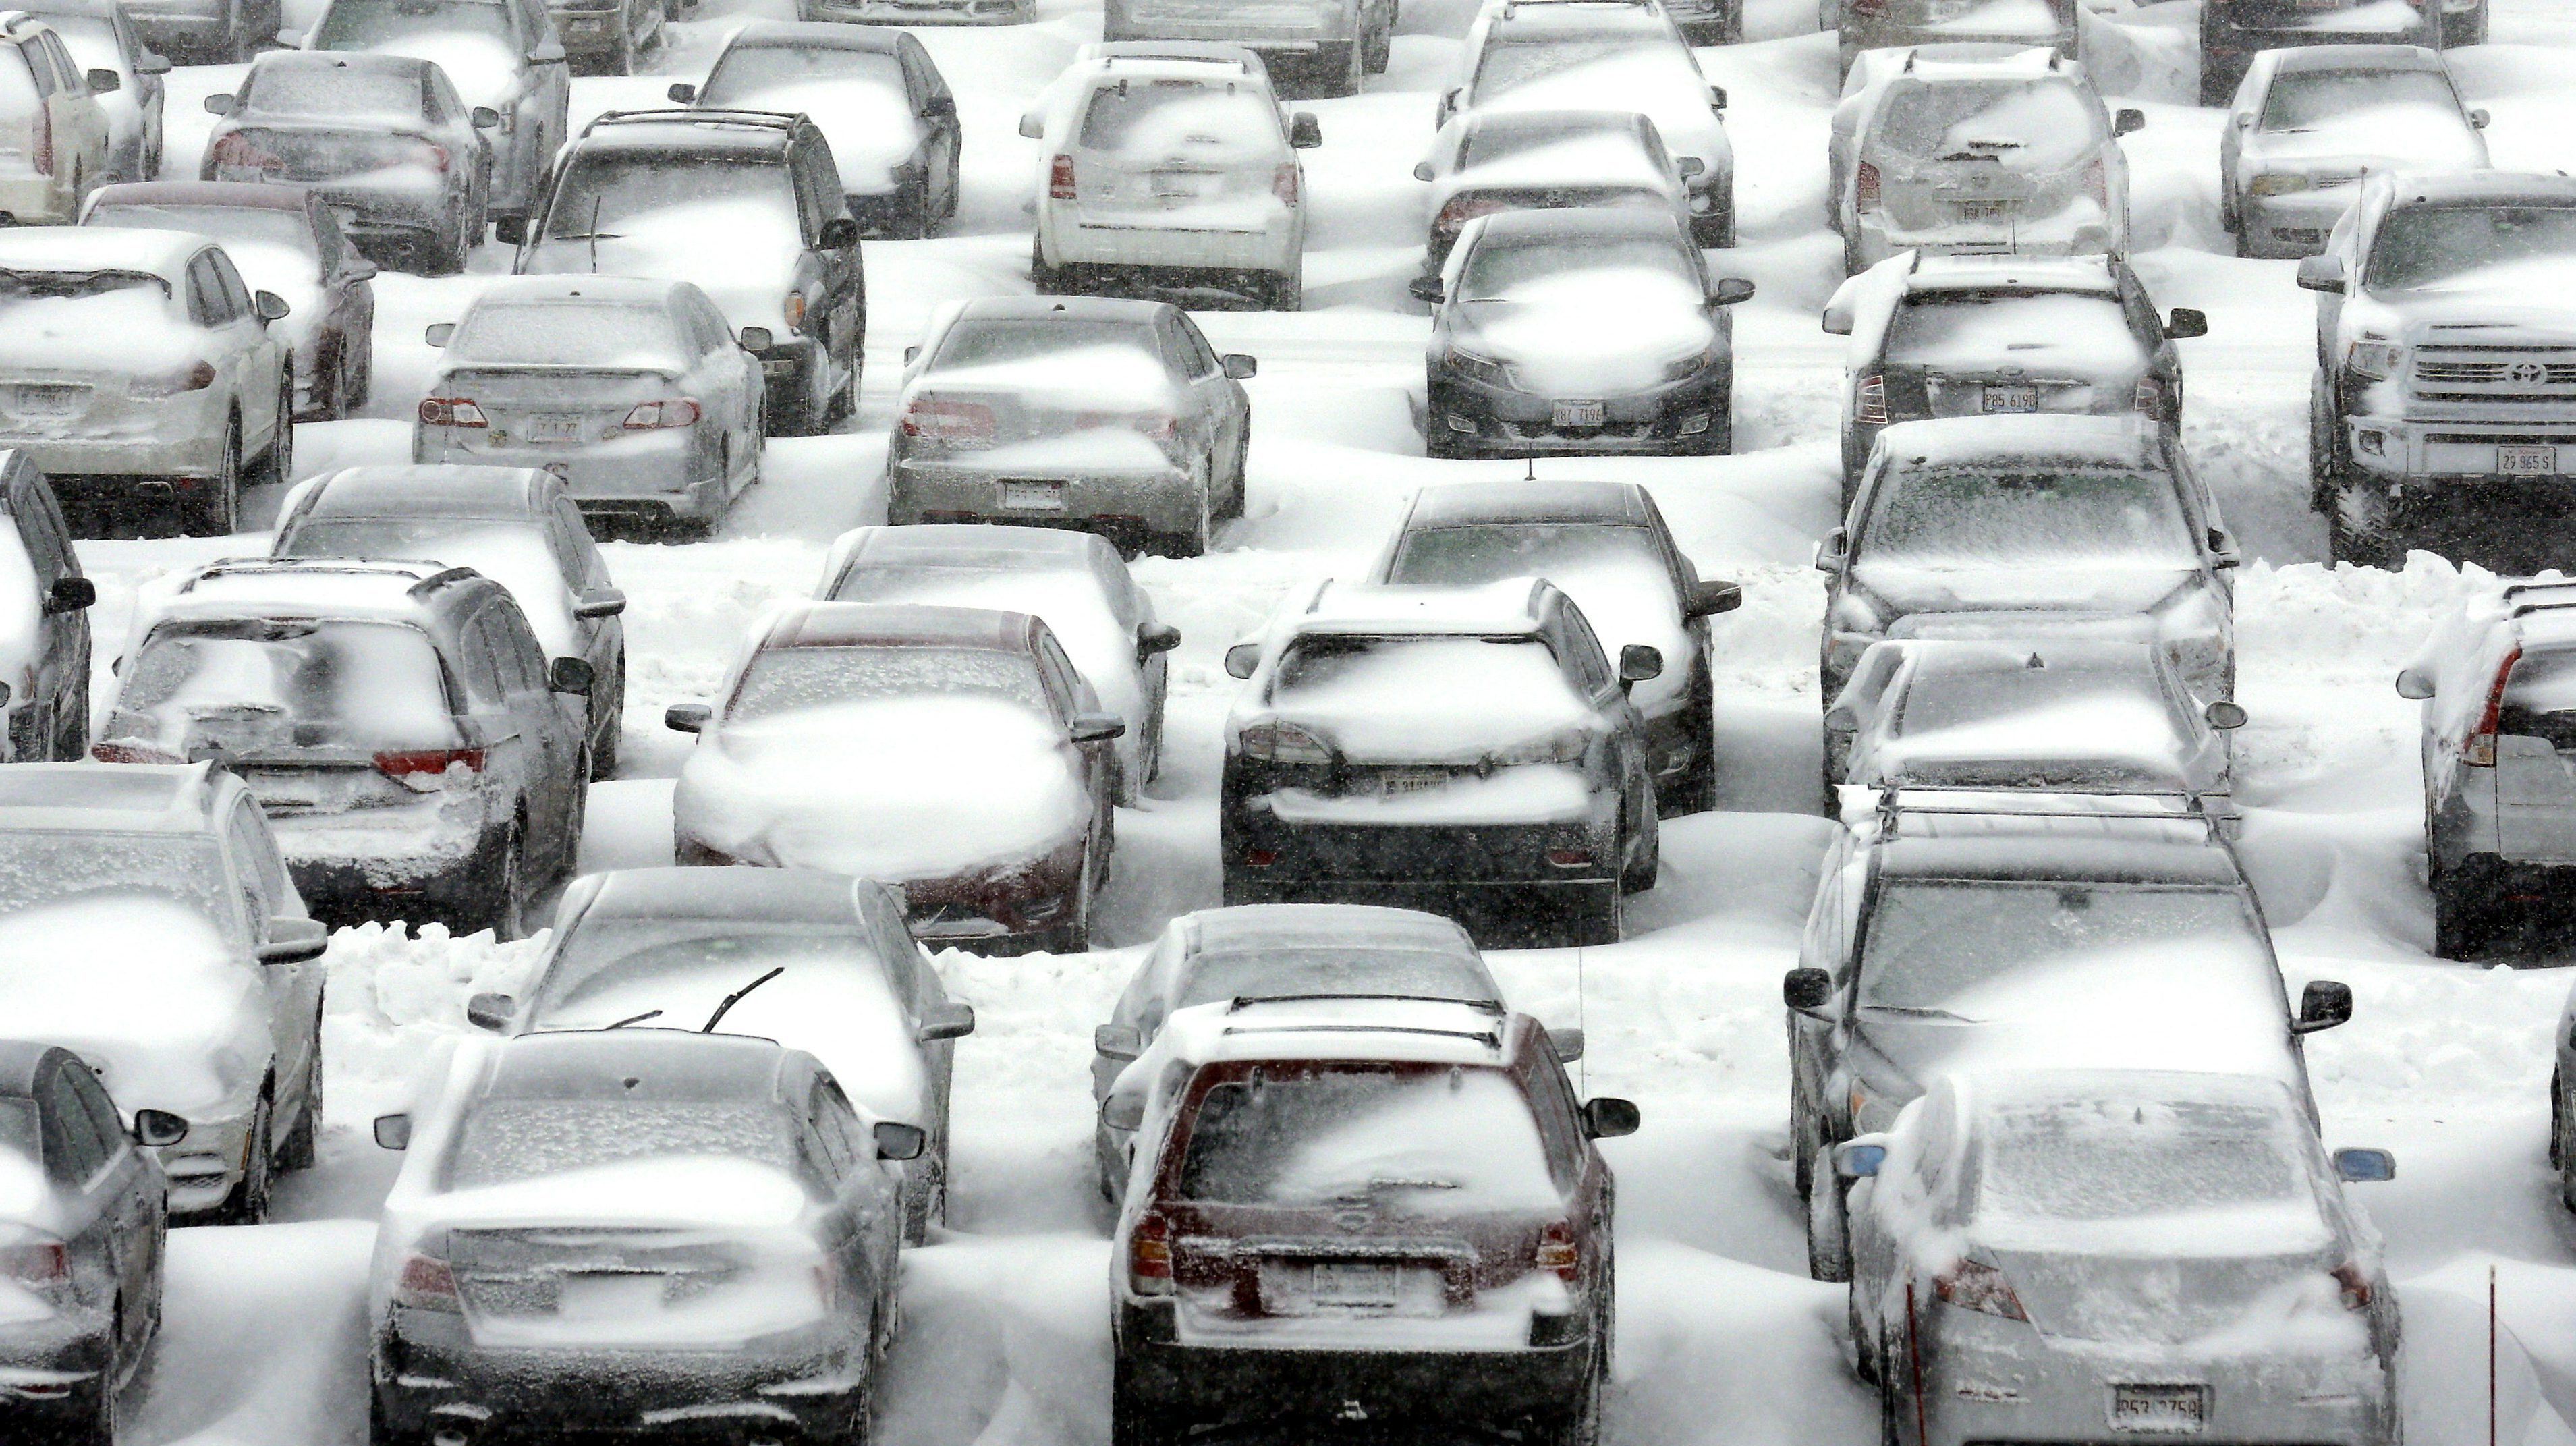 Cars covered with snow in a parking lot.